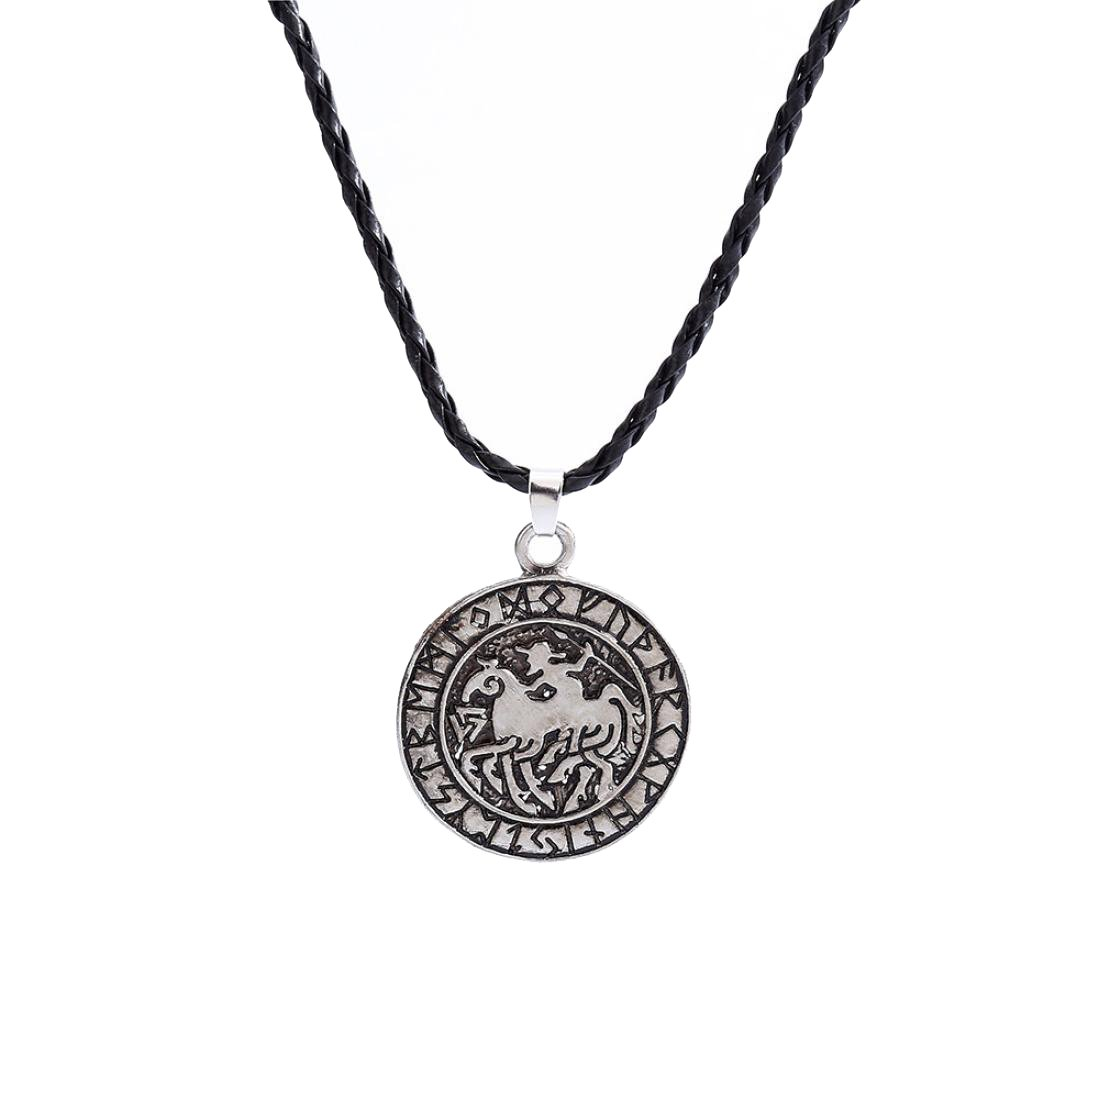 Alixyz Norse Viking Runes Amulet Necklace Pendant Viking And Soldier Talisman (Silver, alloy)